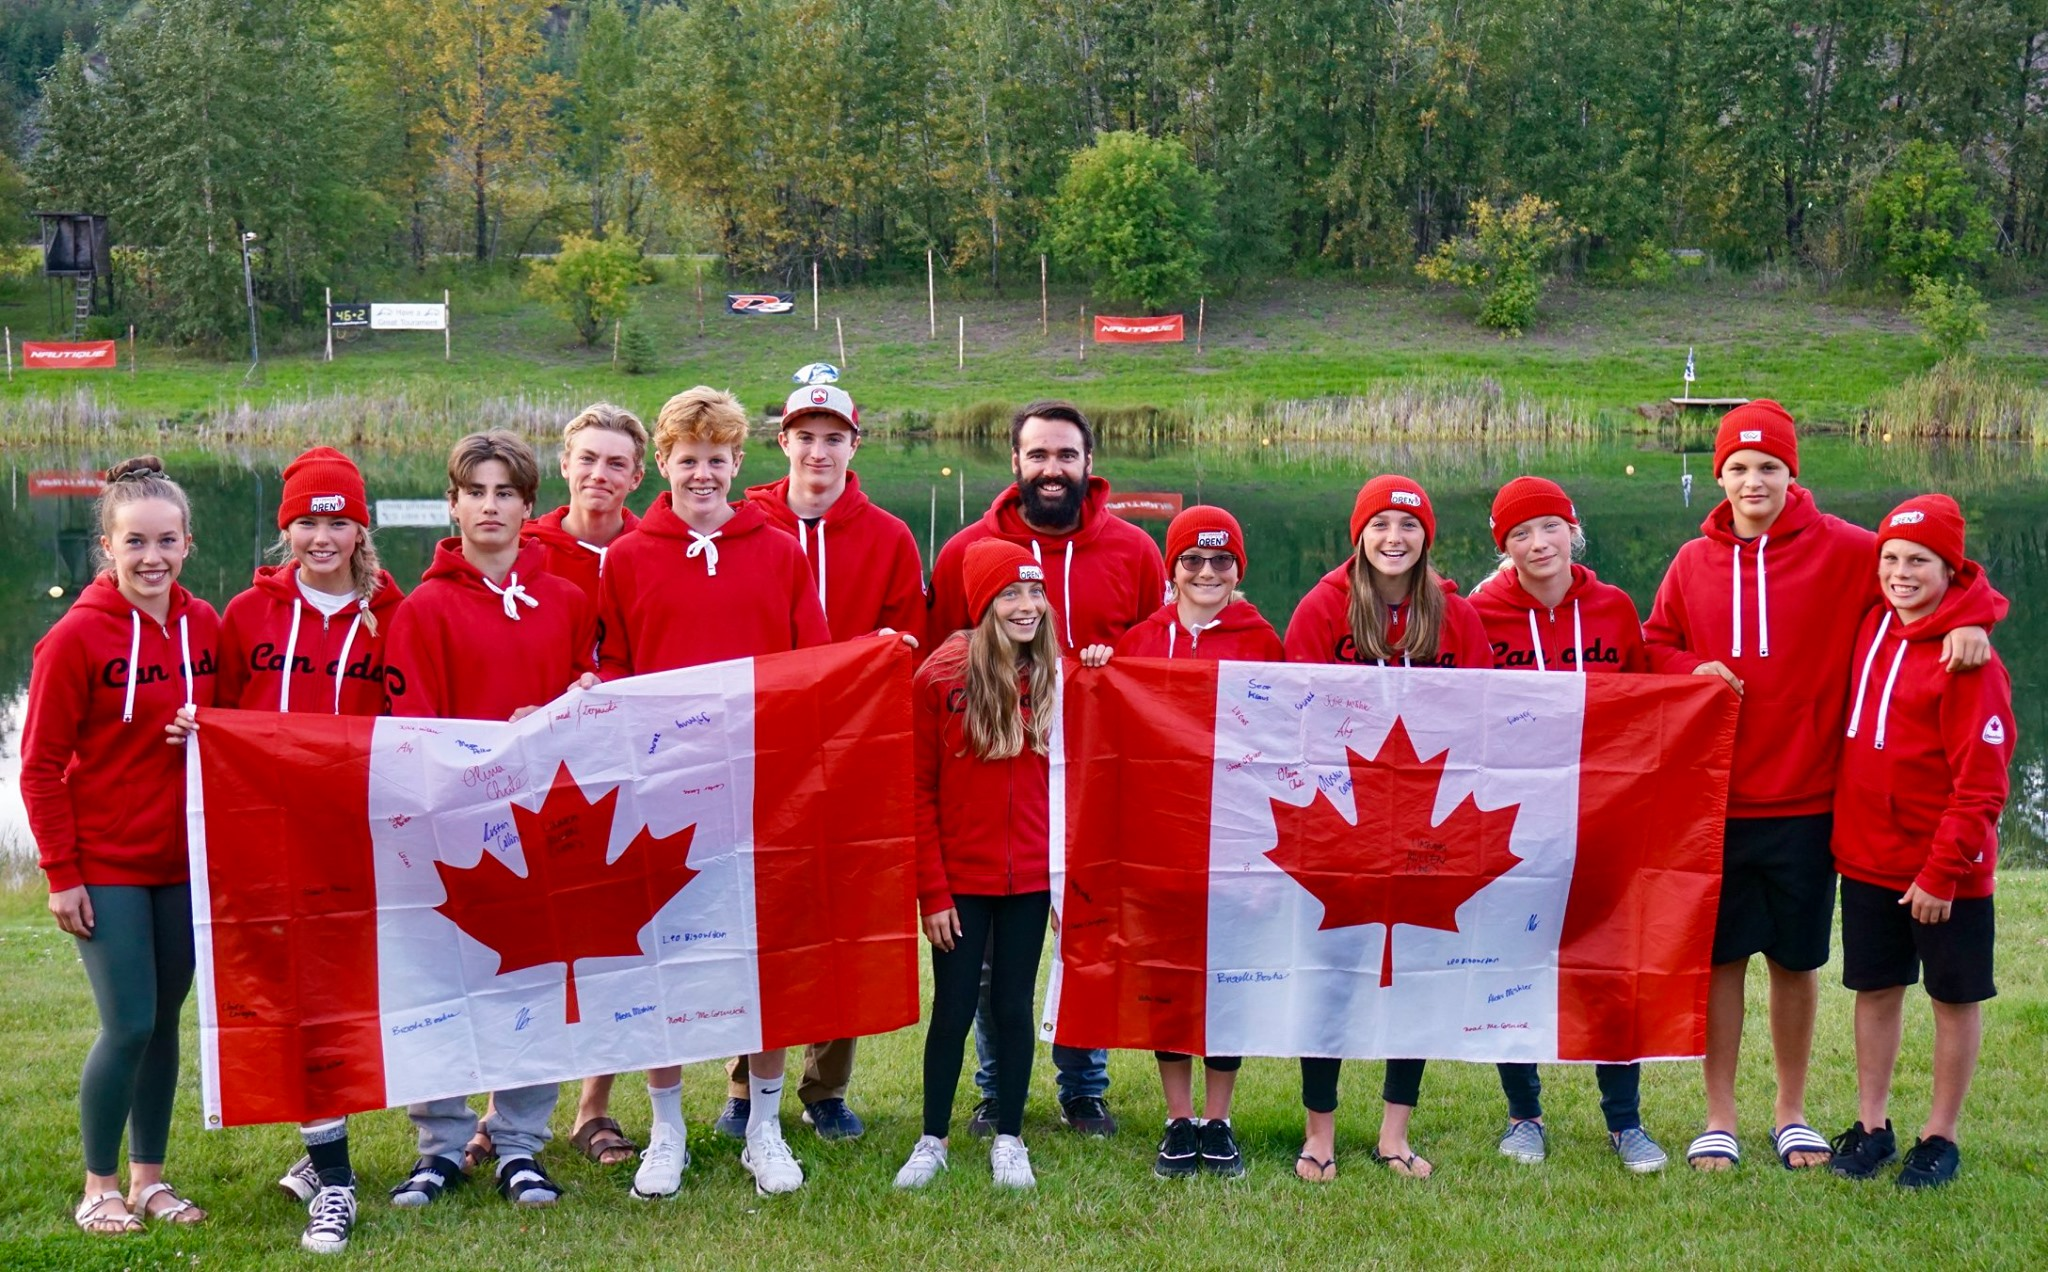 SELECTION CRITERIA NOW AVAILABLE FOR THE CAN AM CHALLENGE